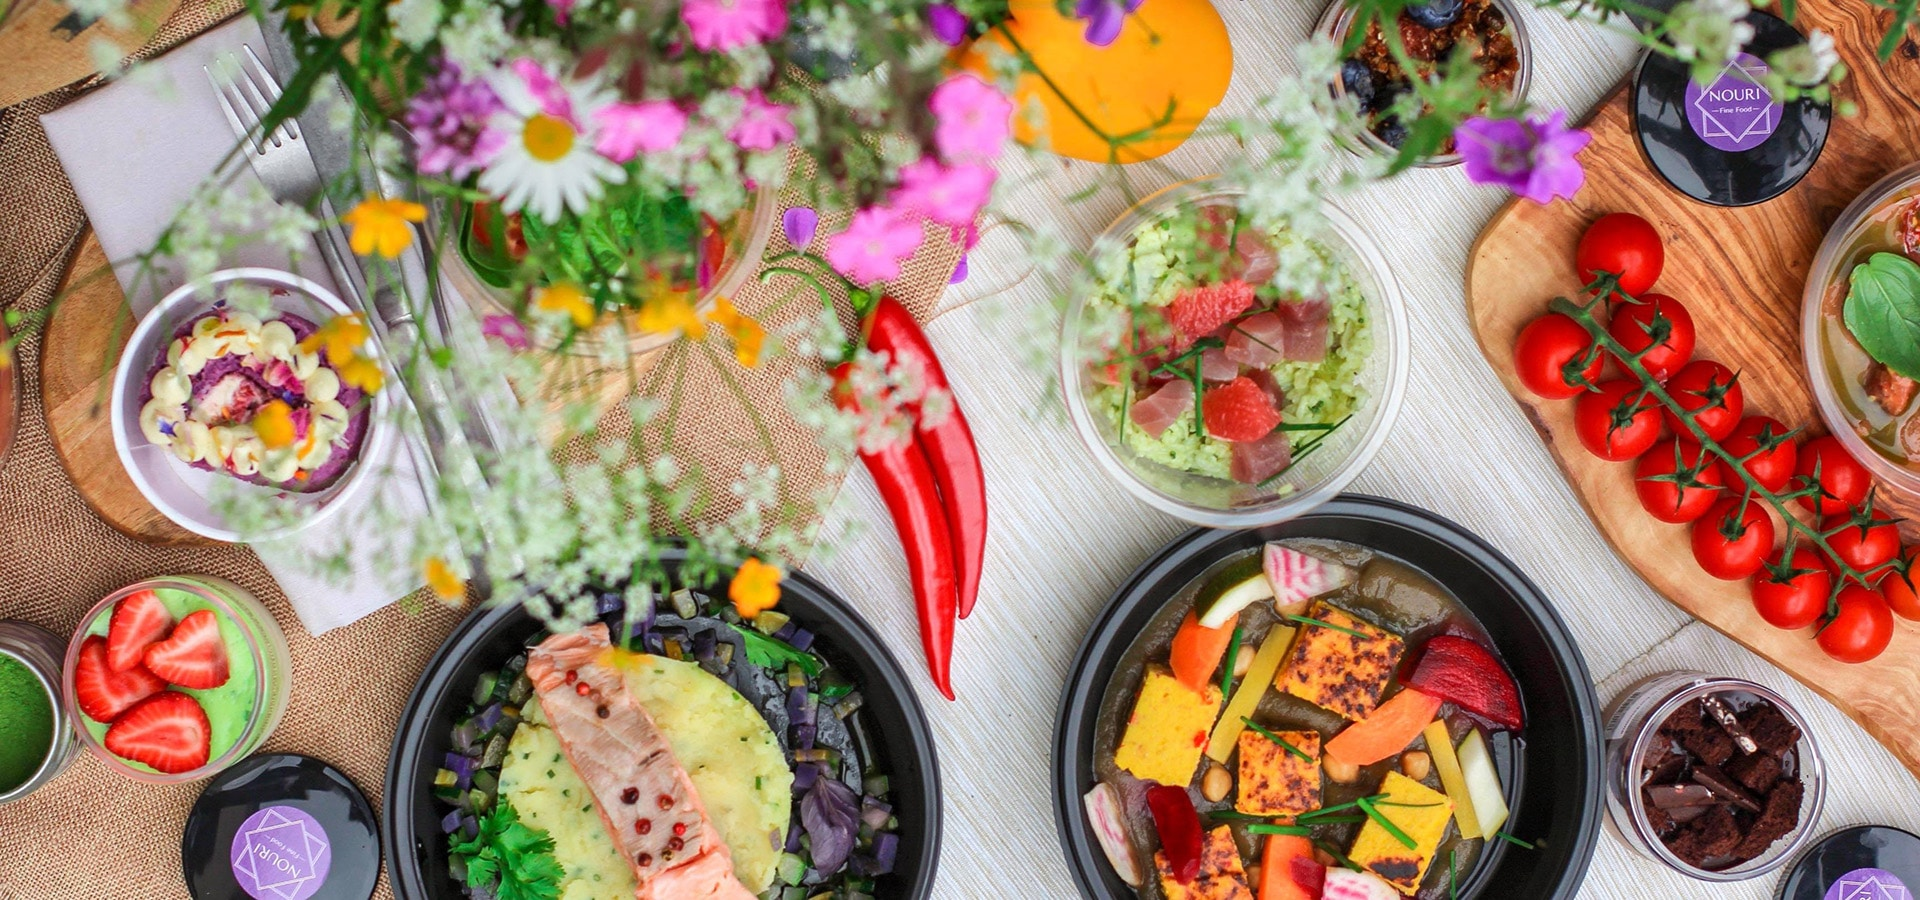 Hero image for Outdoor Food Trends You're Sure To See In 2021